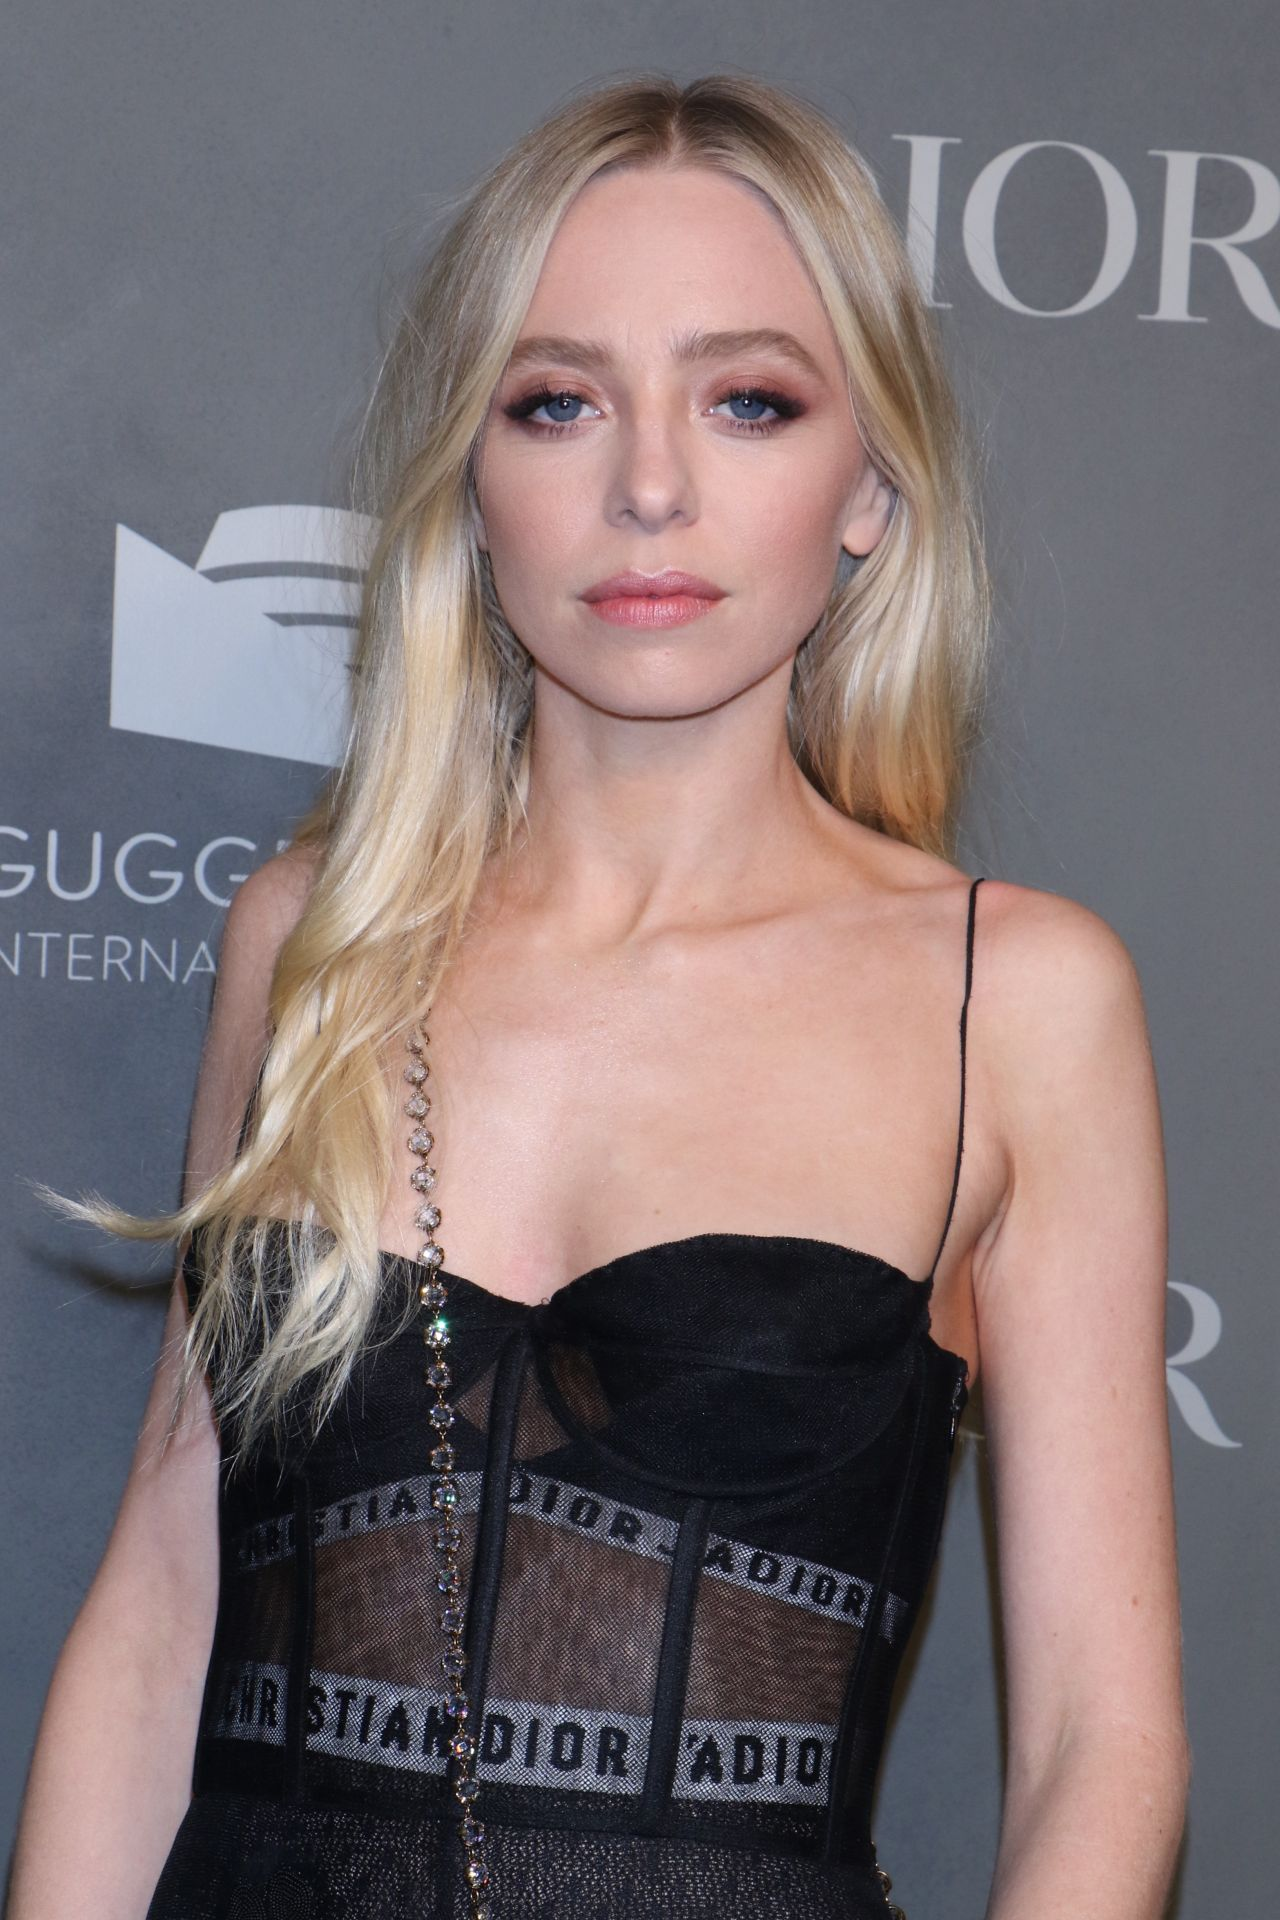 Boobs 2019 Portia Doubleday naked photo 2017